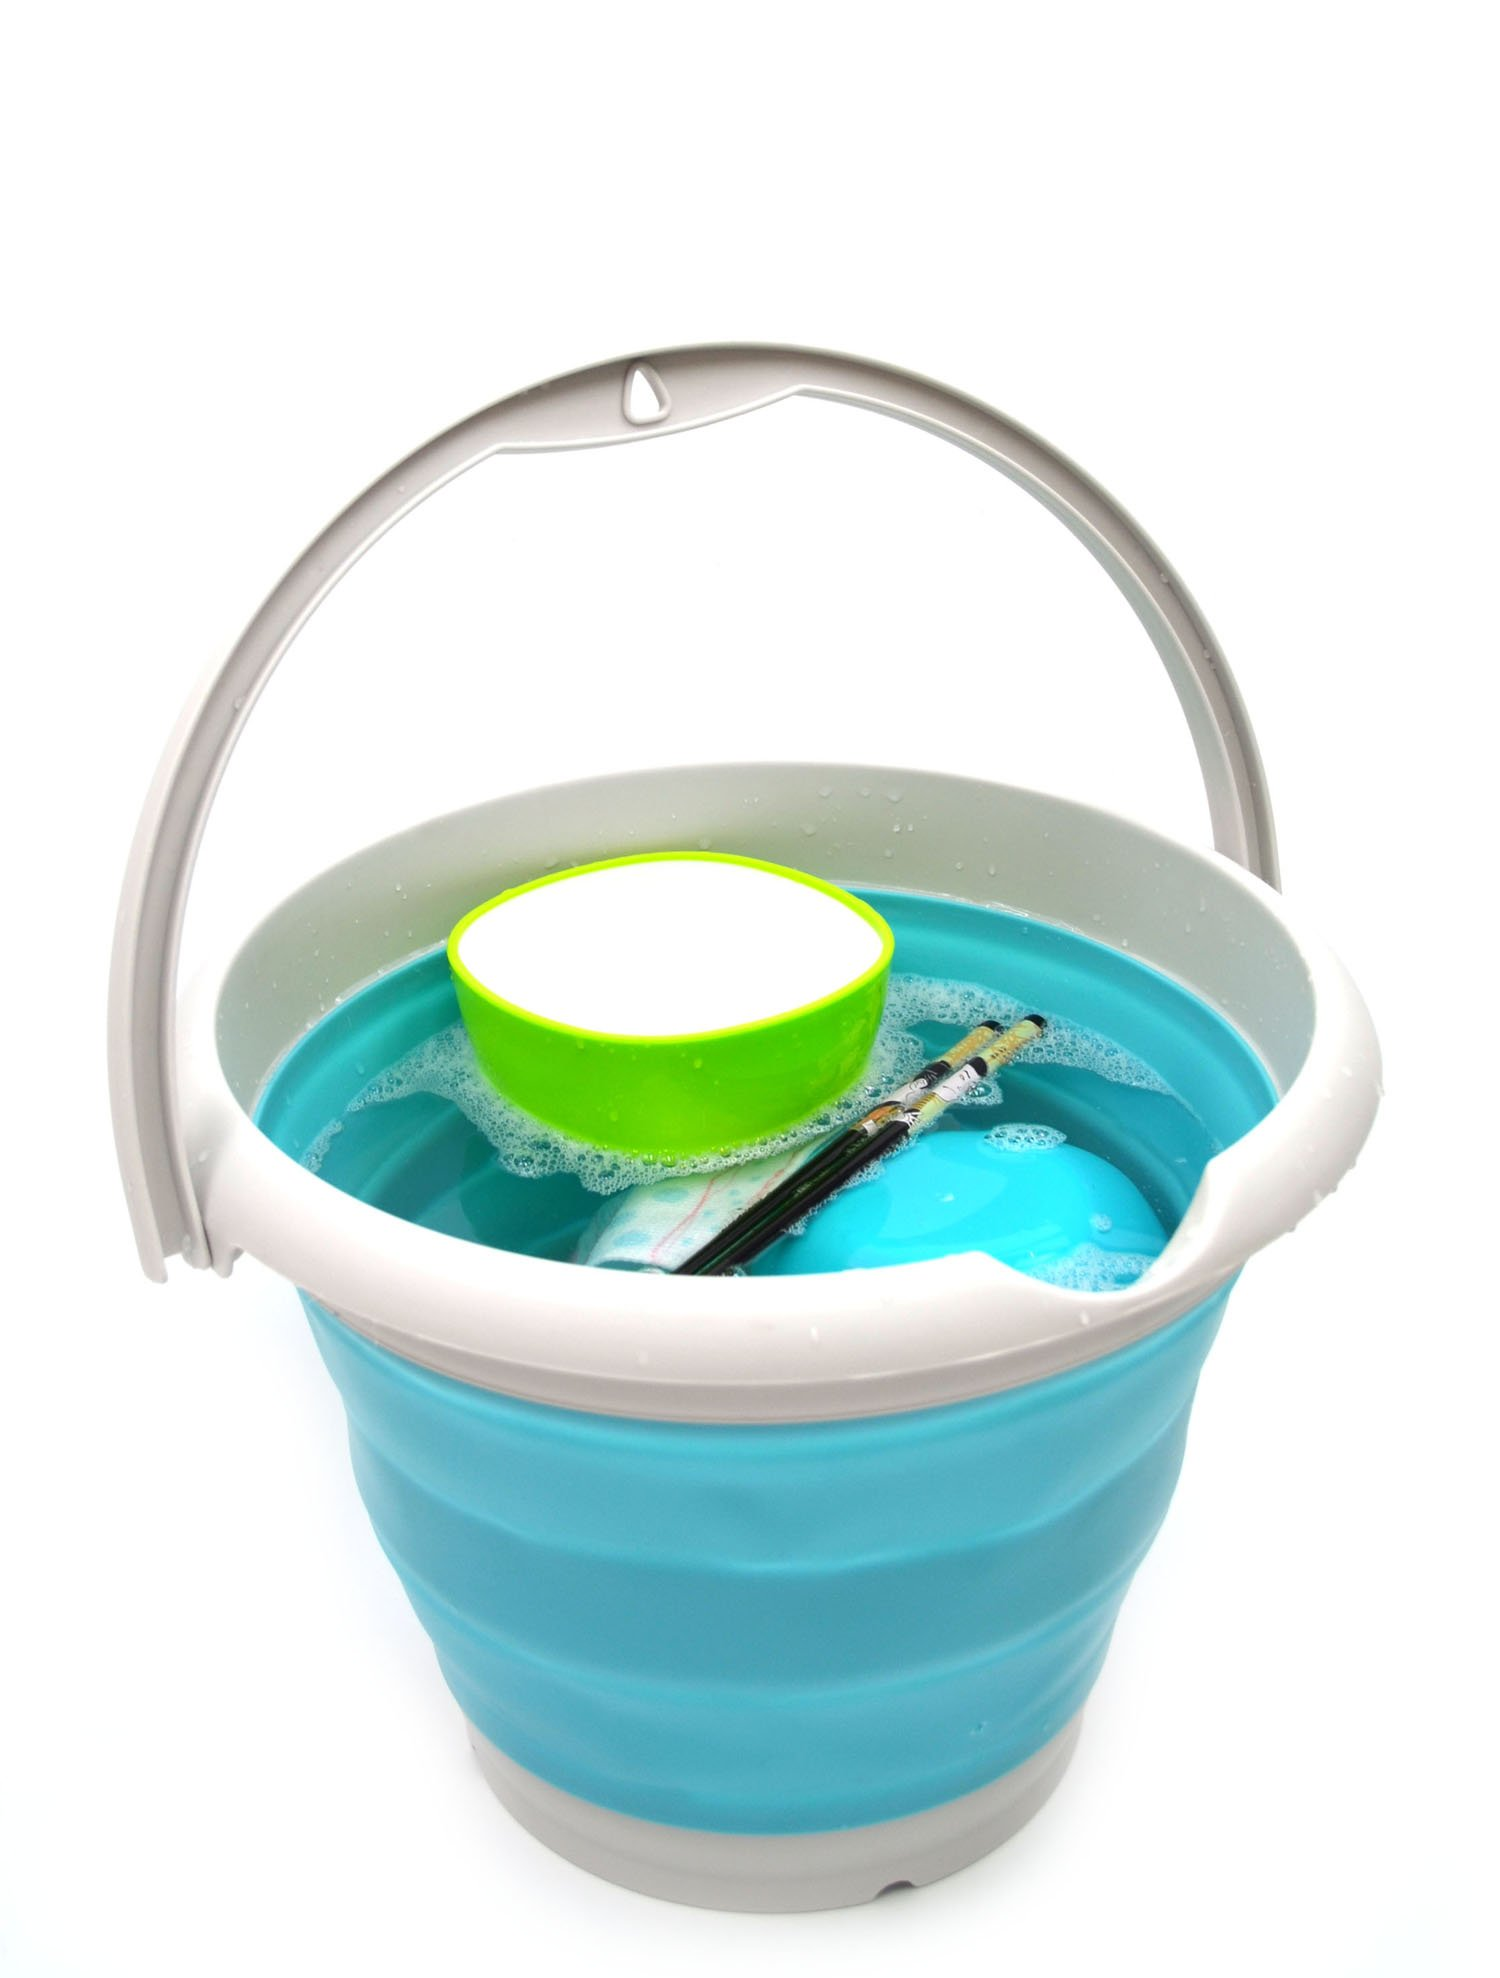 SAMMART 10L (2.6 Gallon) Collapsible Plastic Bucket - Foldable Round Tub - Portable Fishing Water Pail - Space Saving Outdoor Waterpot, size 33cm dia (1, Bright Blue) by SAMMART (Image #6)